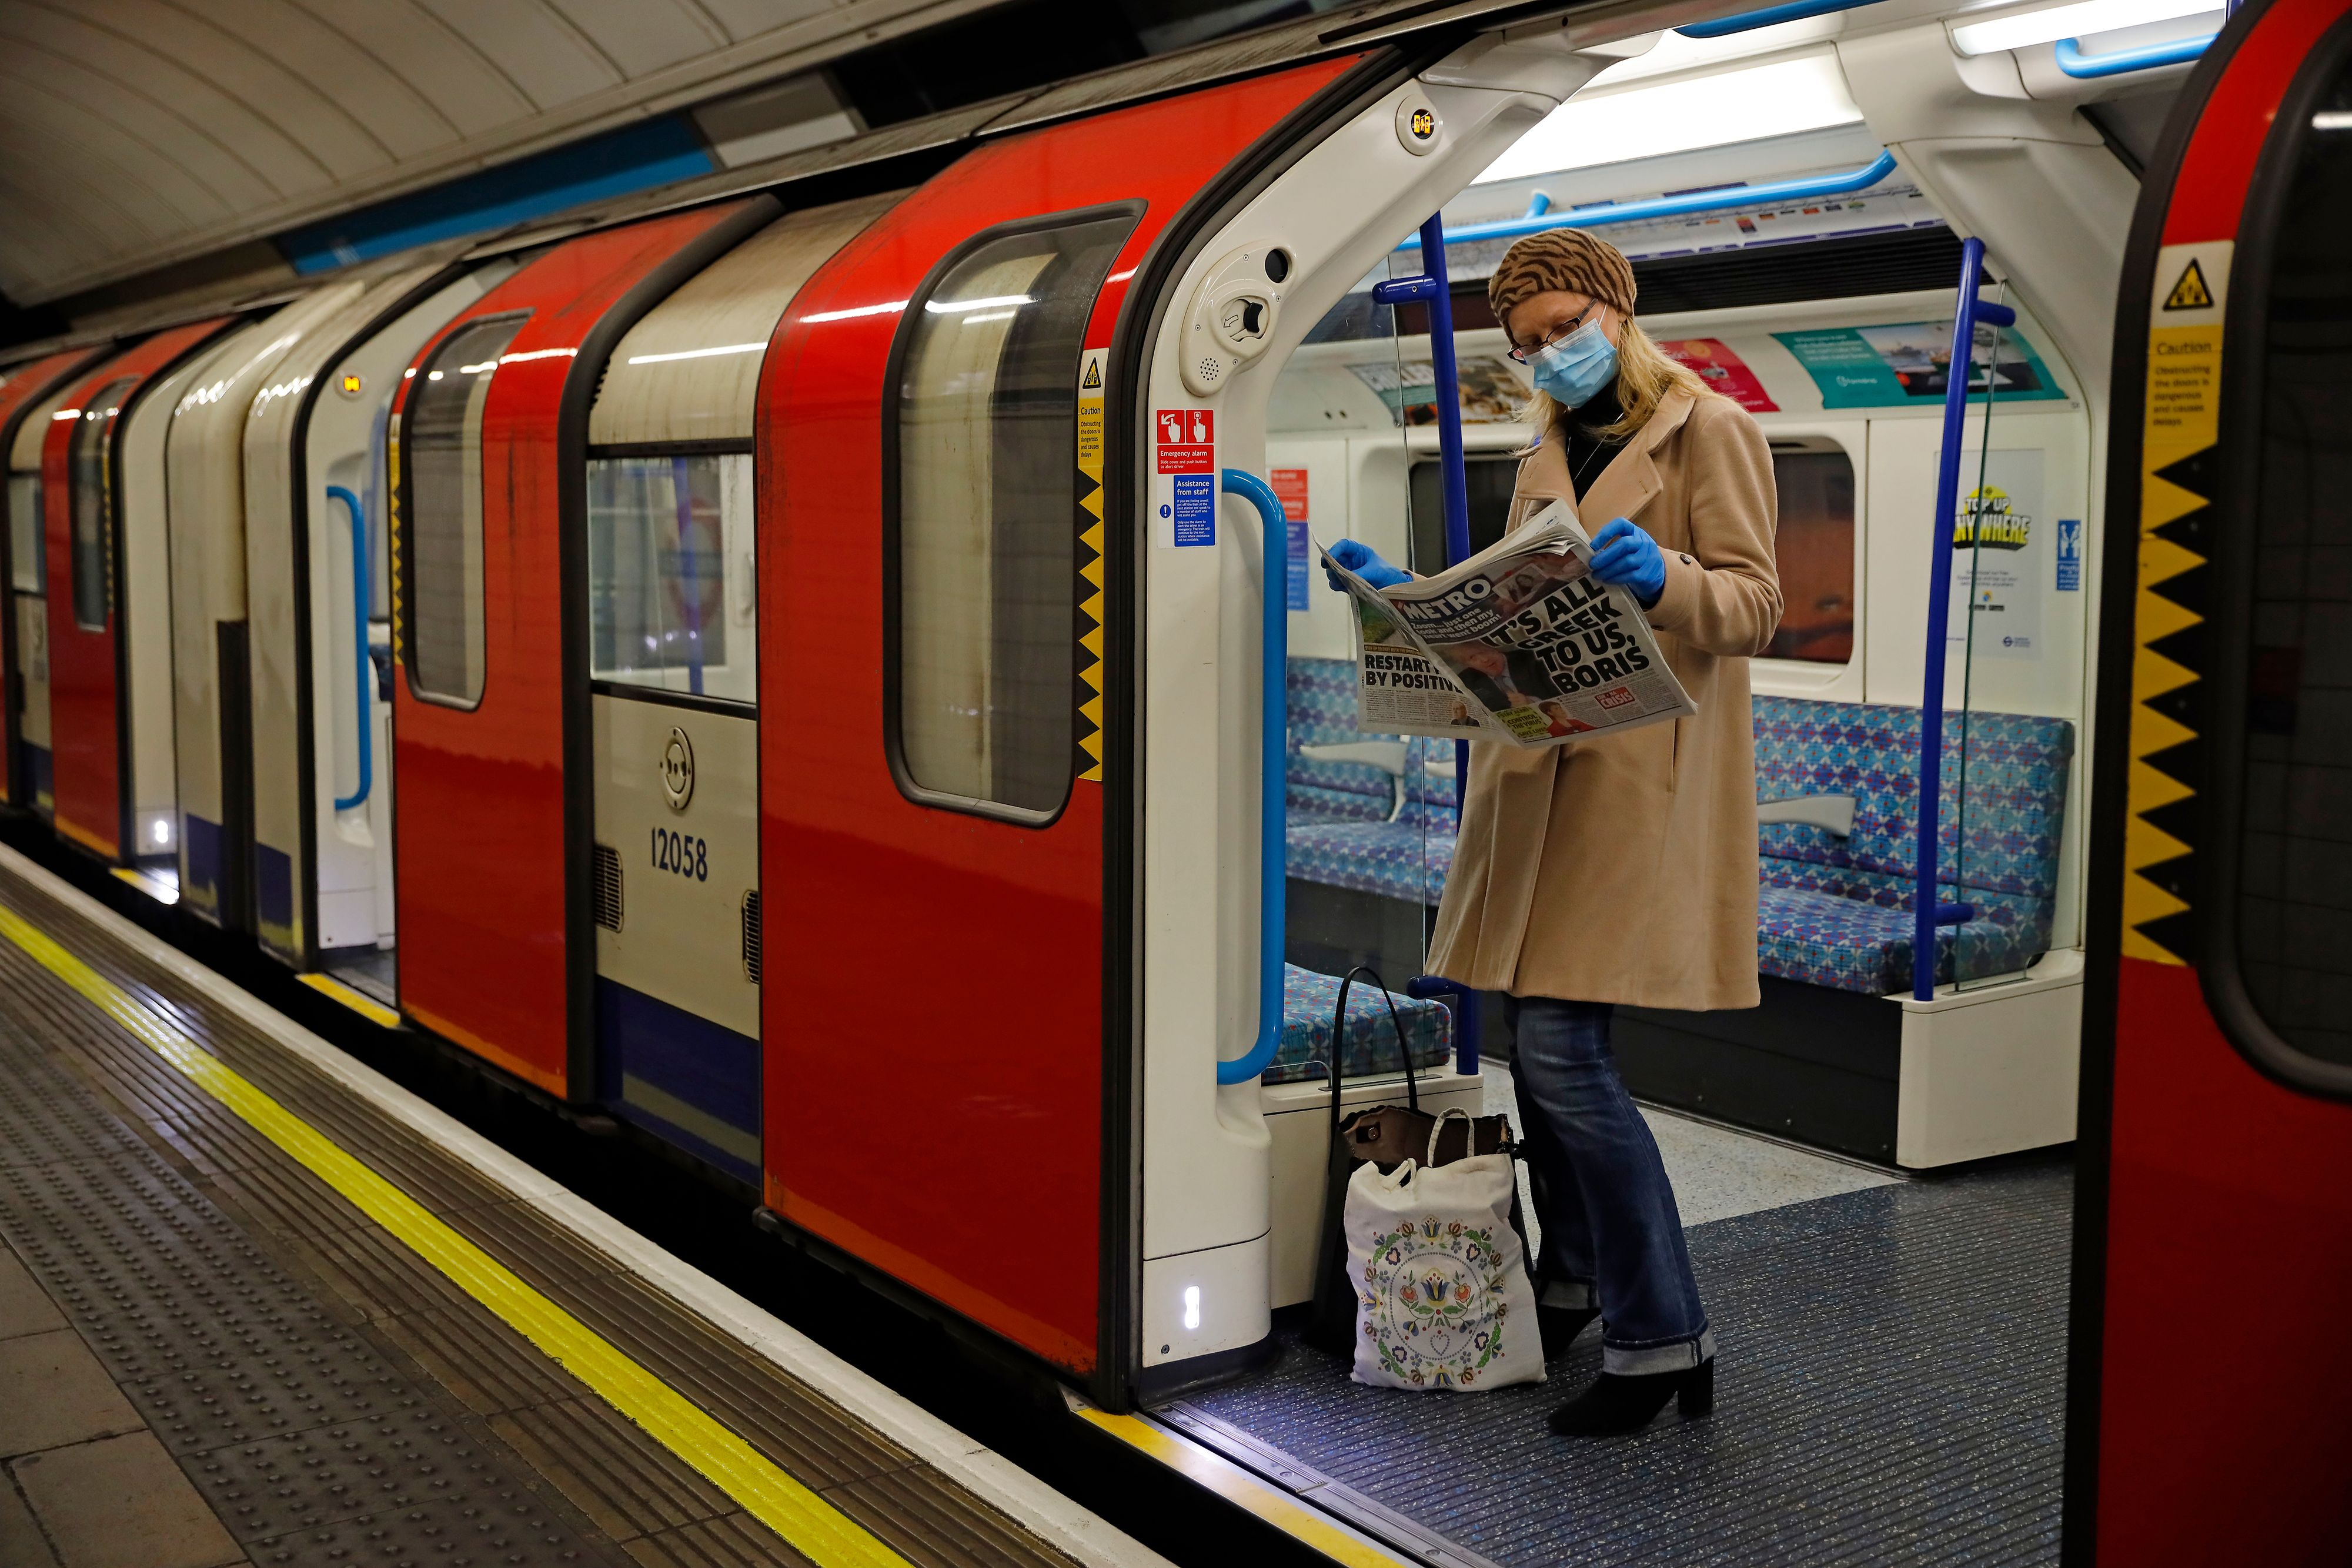 Public transport offers a slower more intimate way of exploring